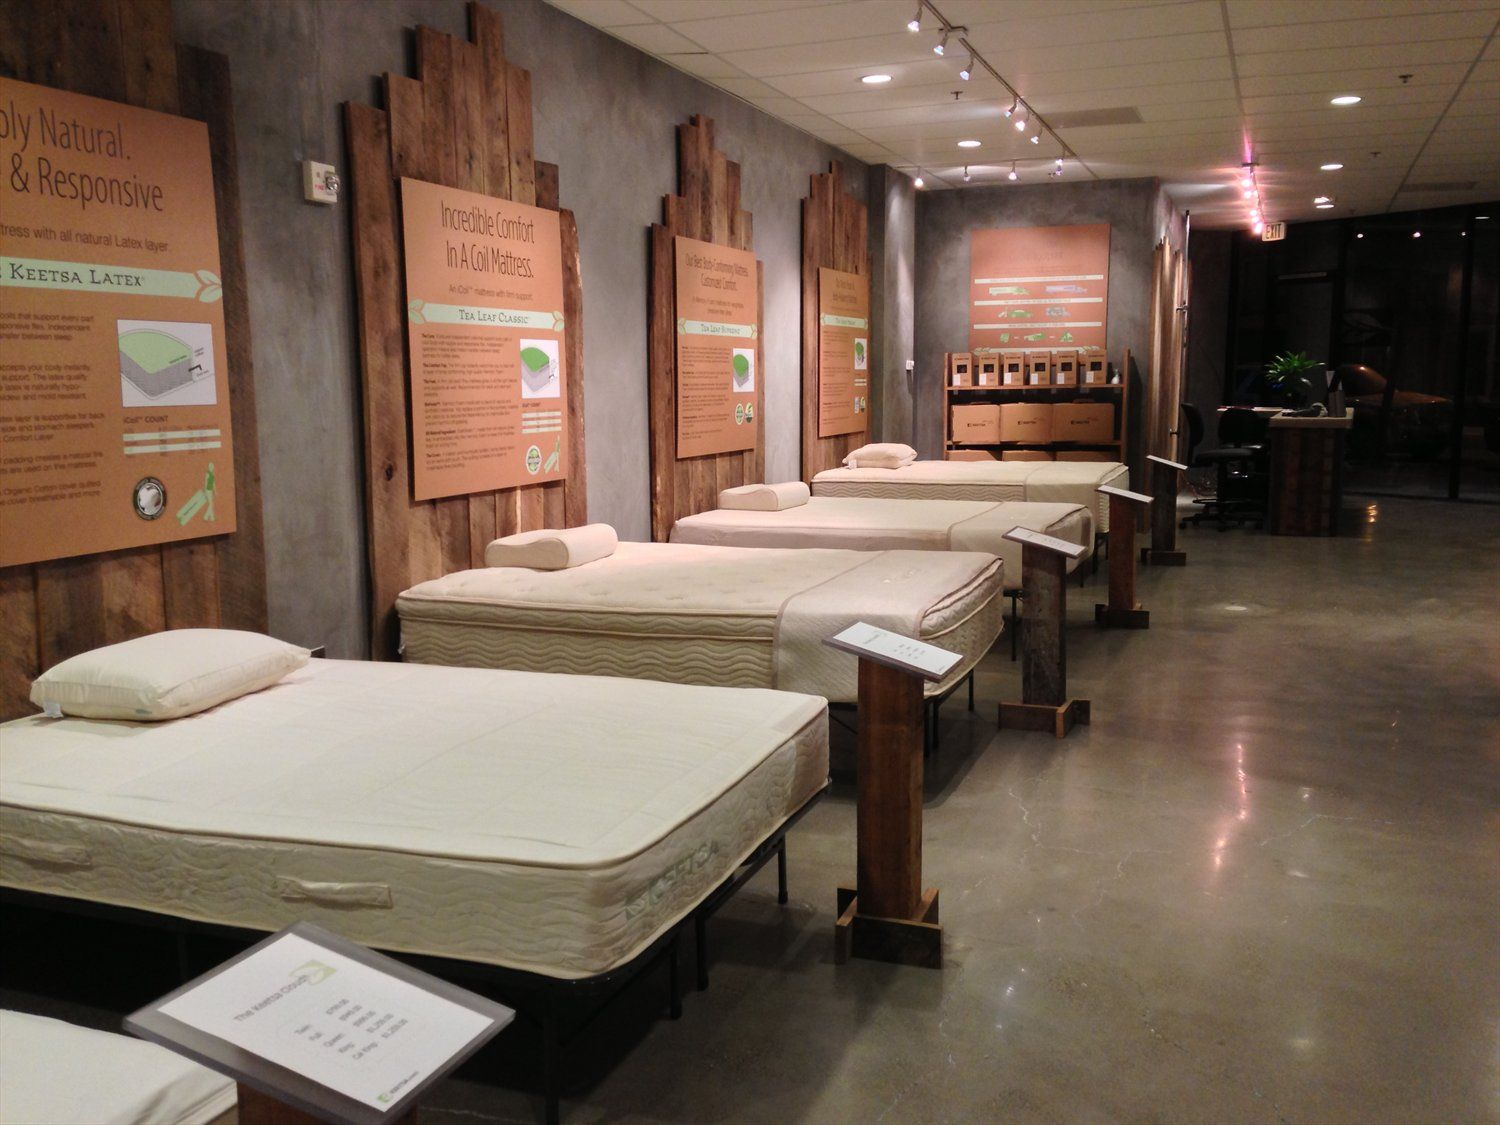 Keetsa Eco Friendly Mattresses In The Bay Area Area On The Bay